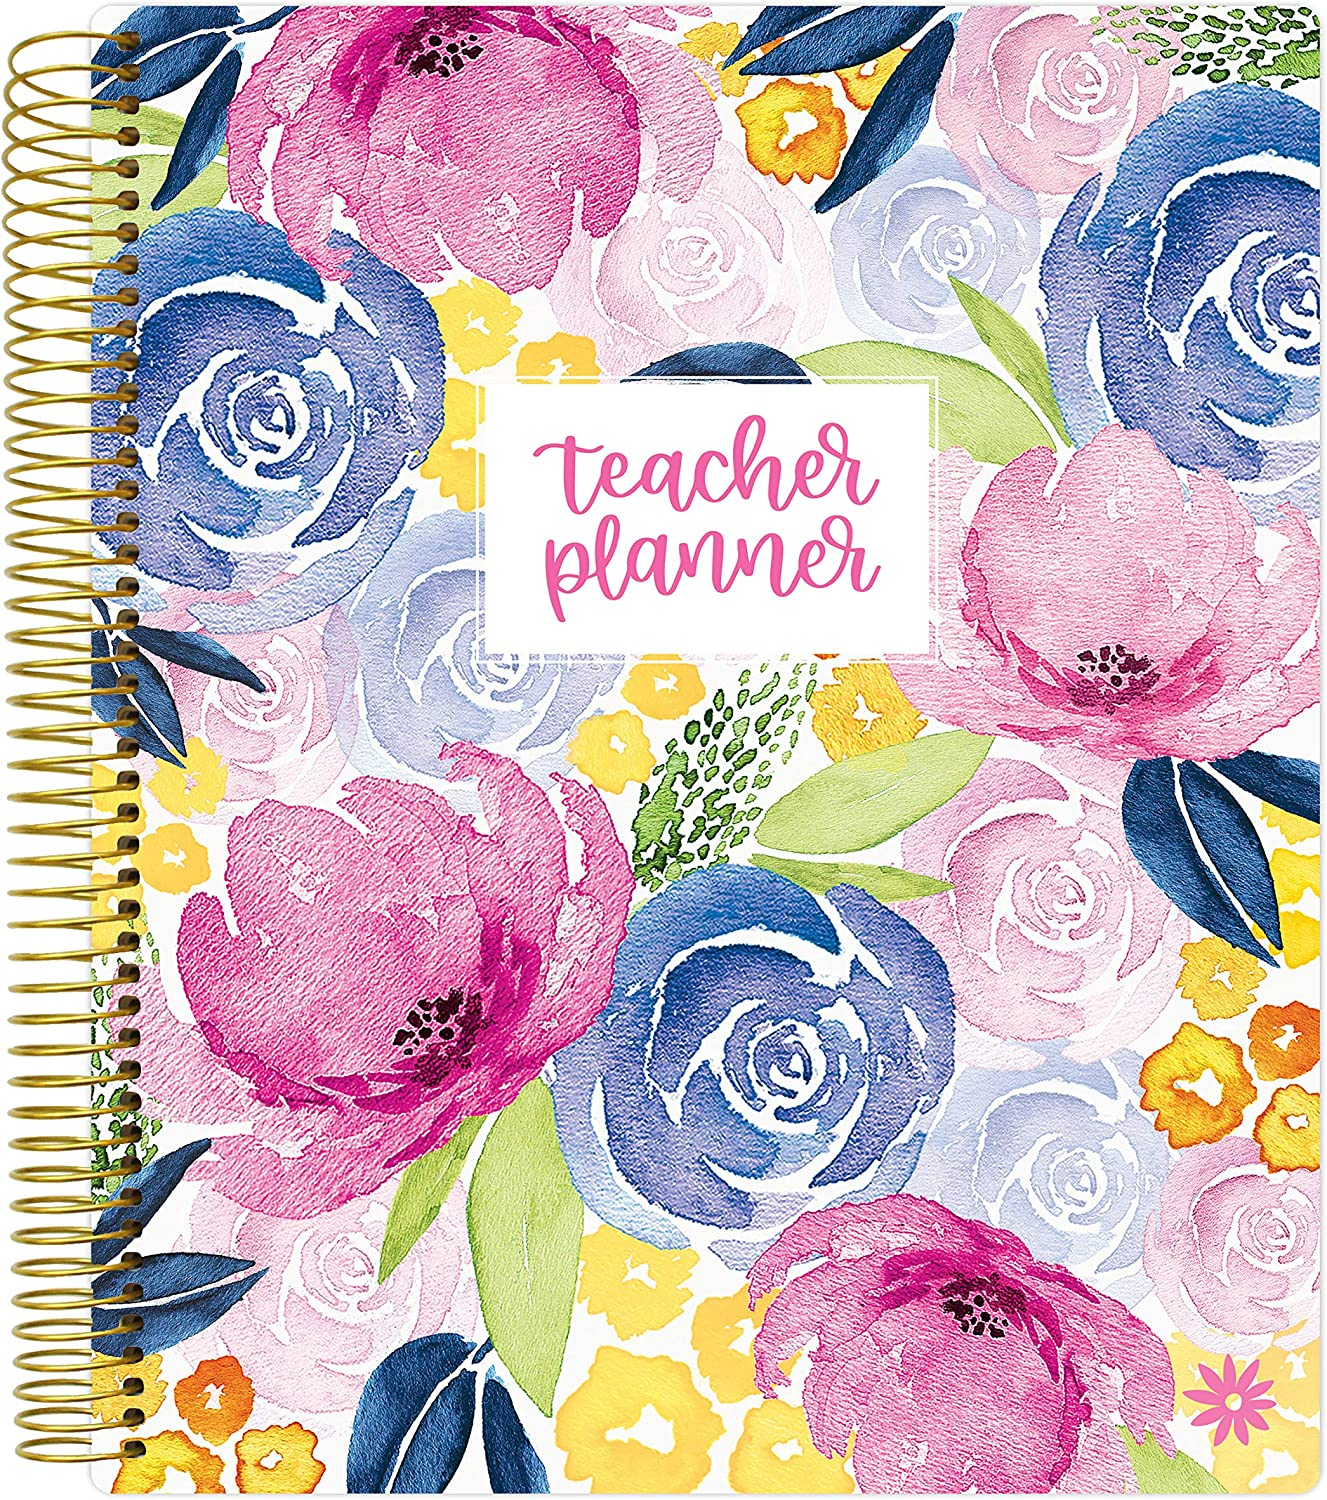 "bloom daily planners Undated Academic Year Teacher Planner - Lesson Plan Calendar Book - 9"" x 11"" - Watercolor Floral : Office Products"